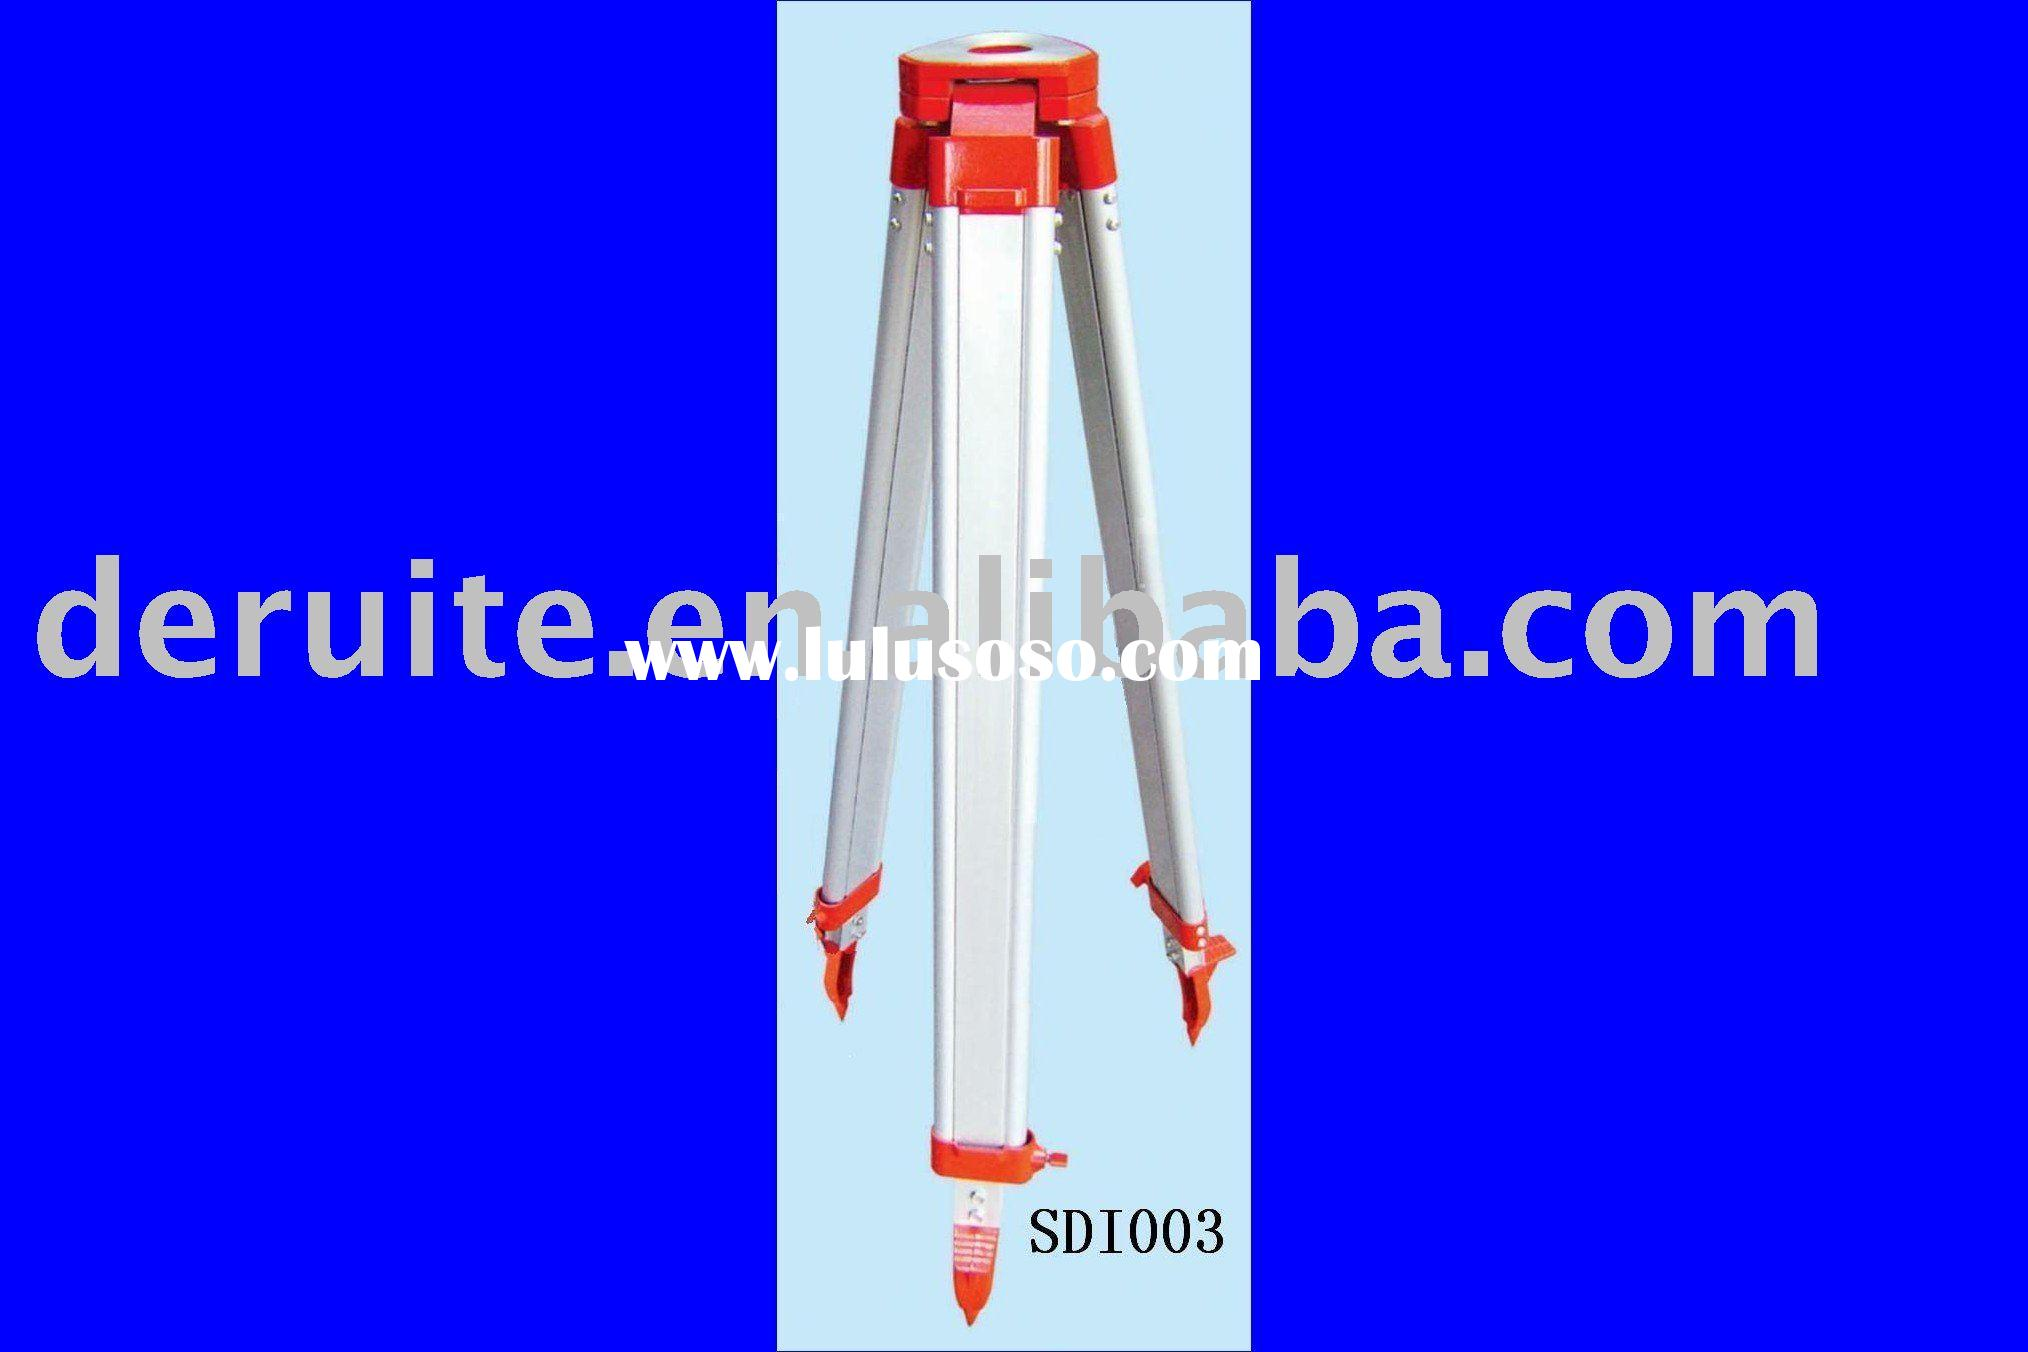 stand tripod SDI003 for auto level and laser level